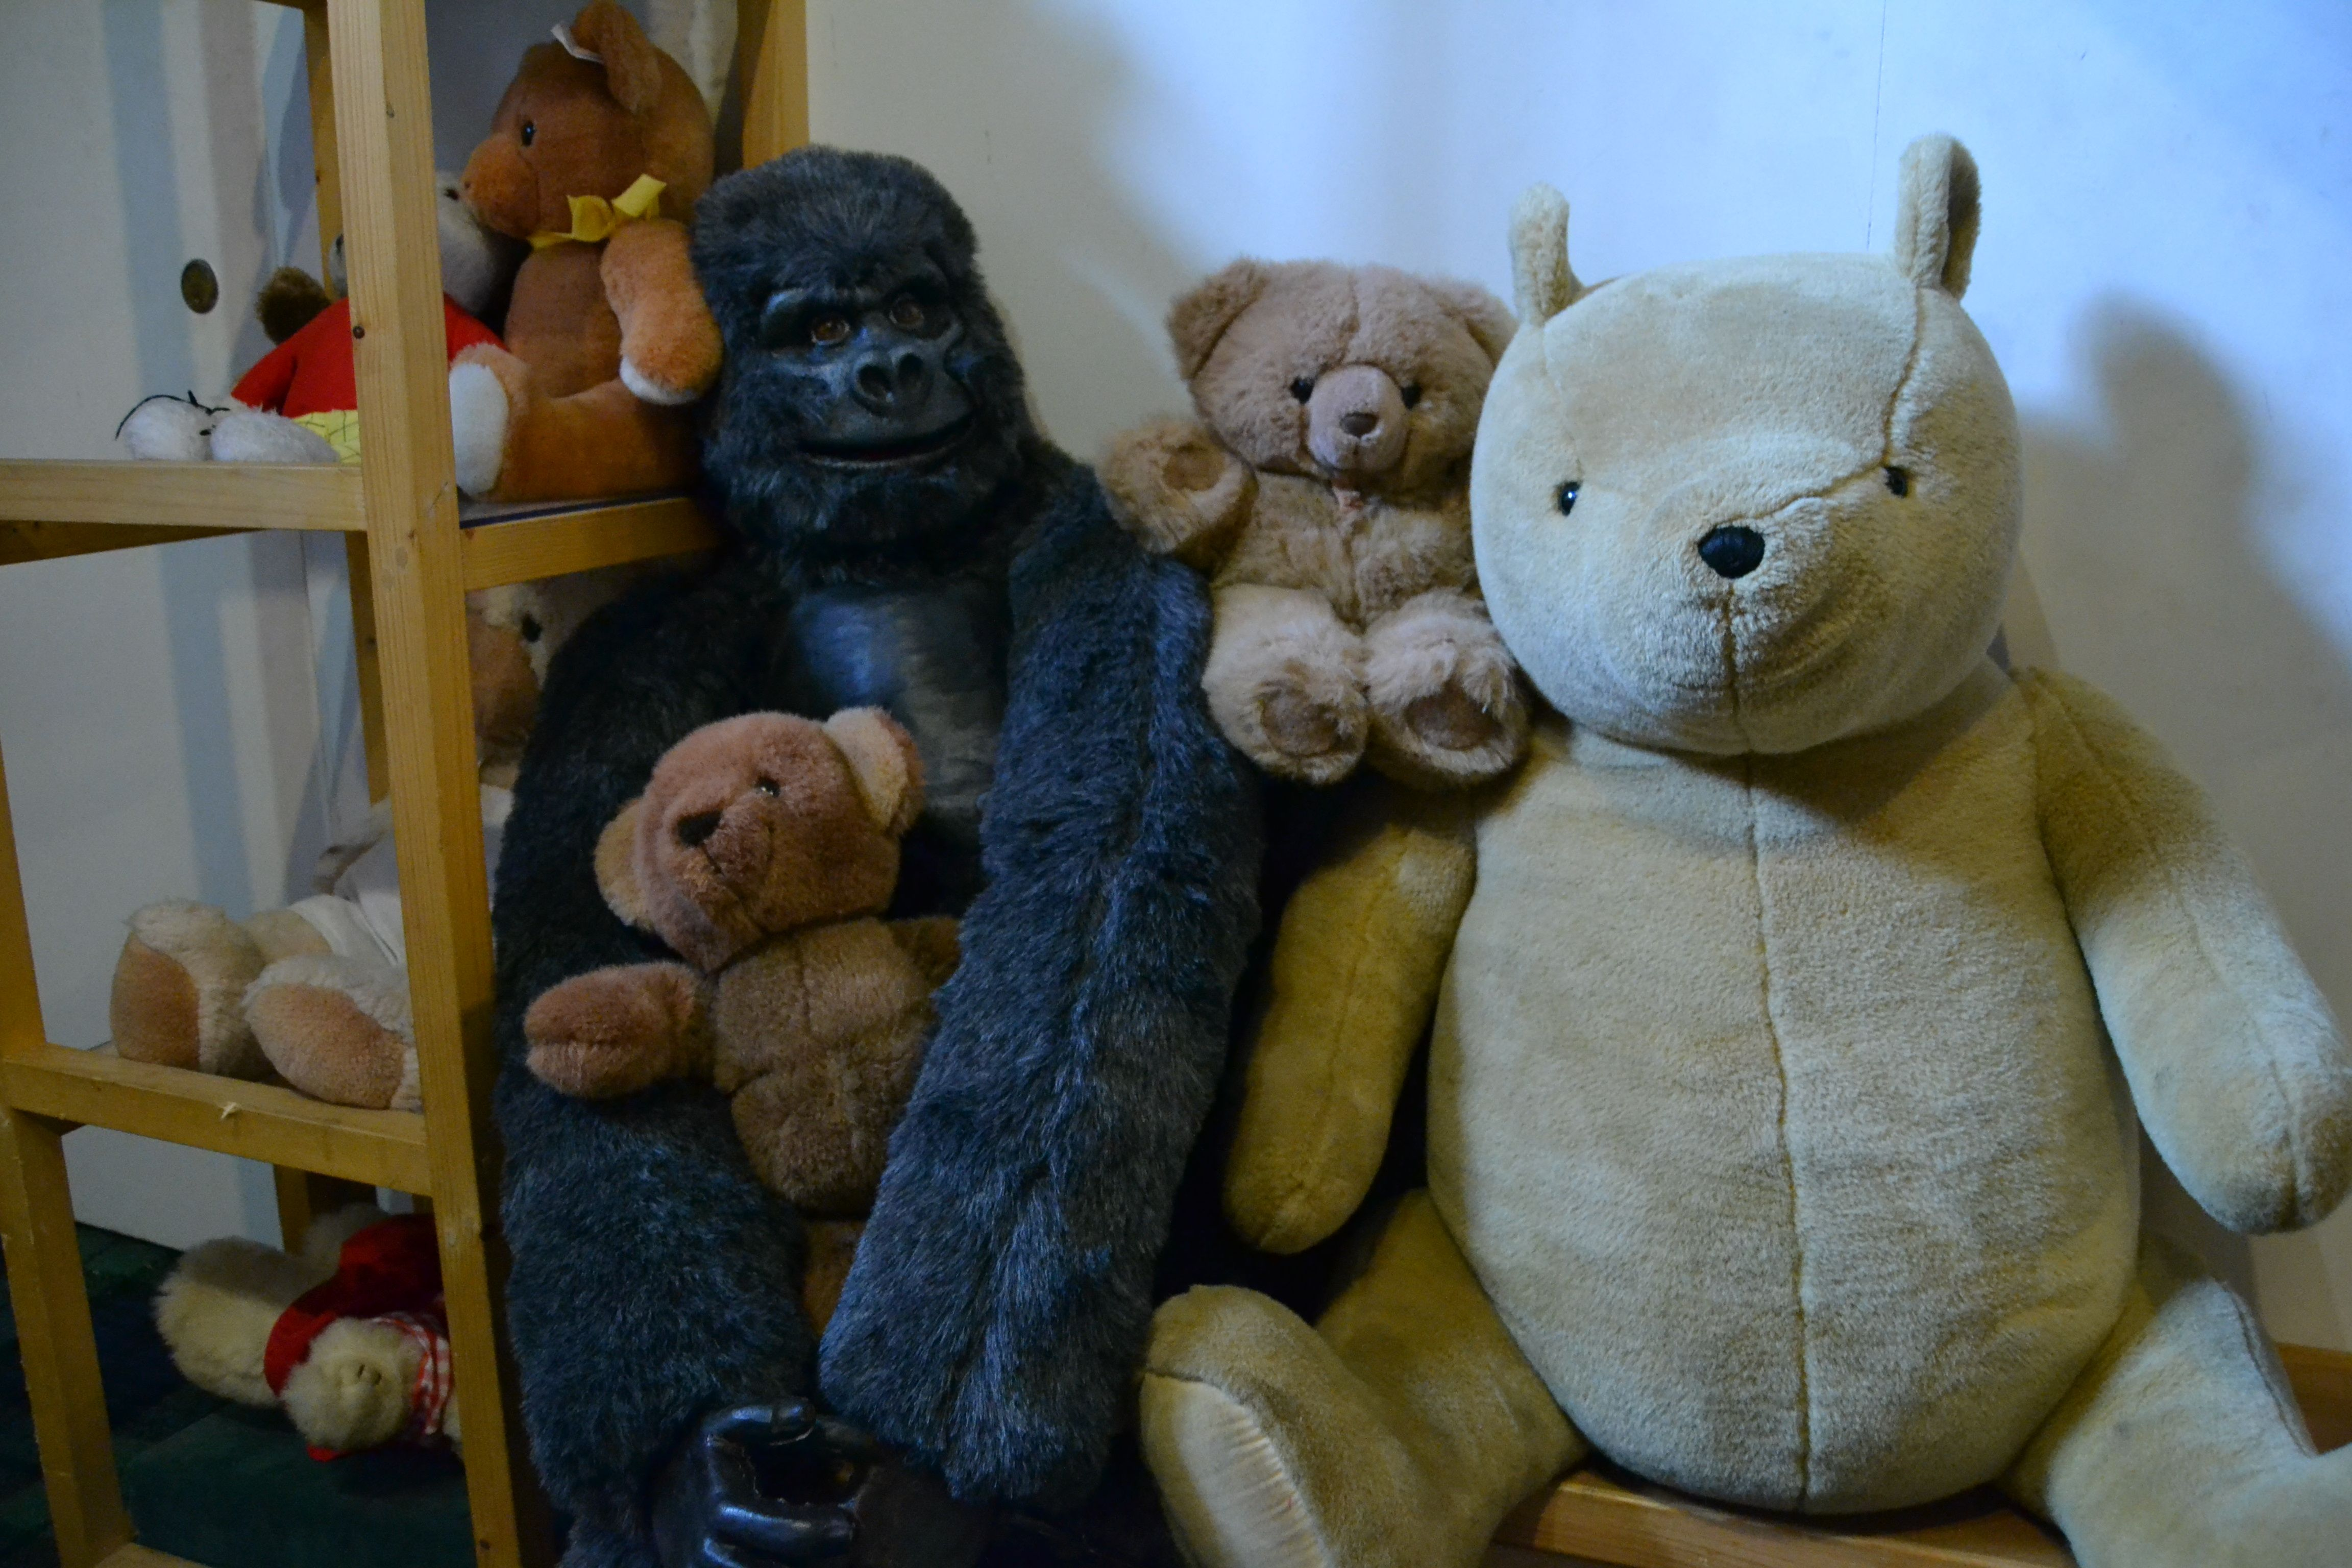 Gorilla Going Incognito In The Teddy Bear Museum